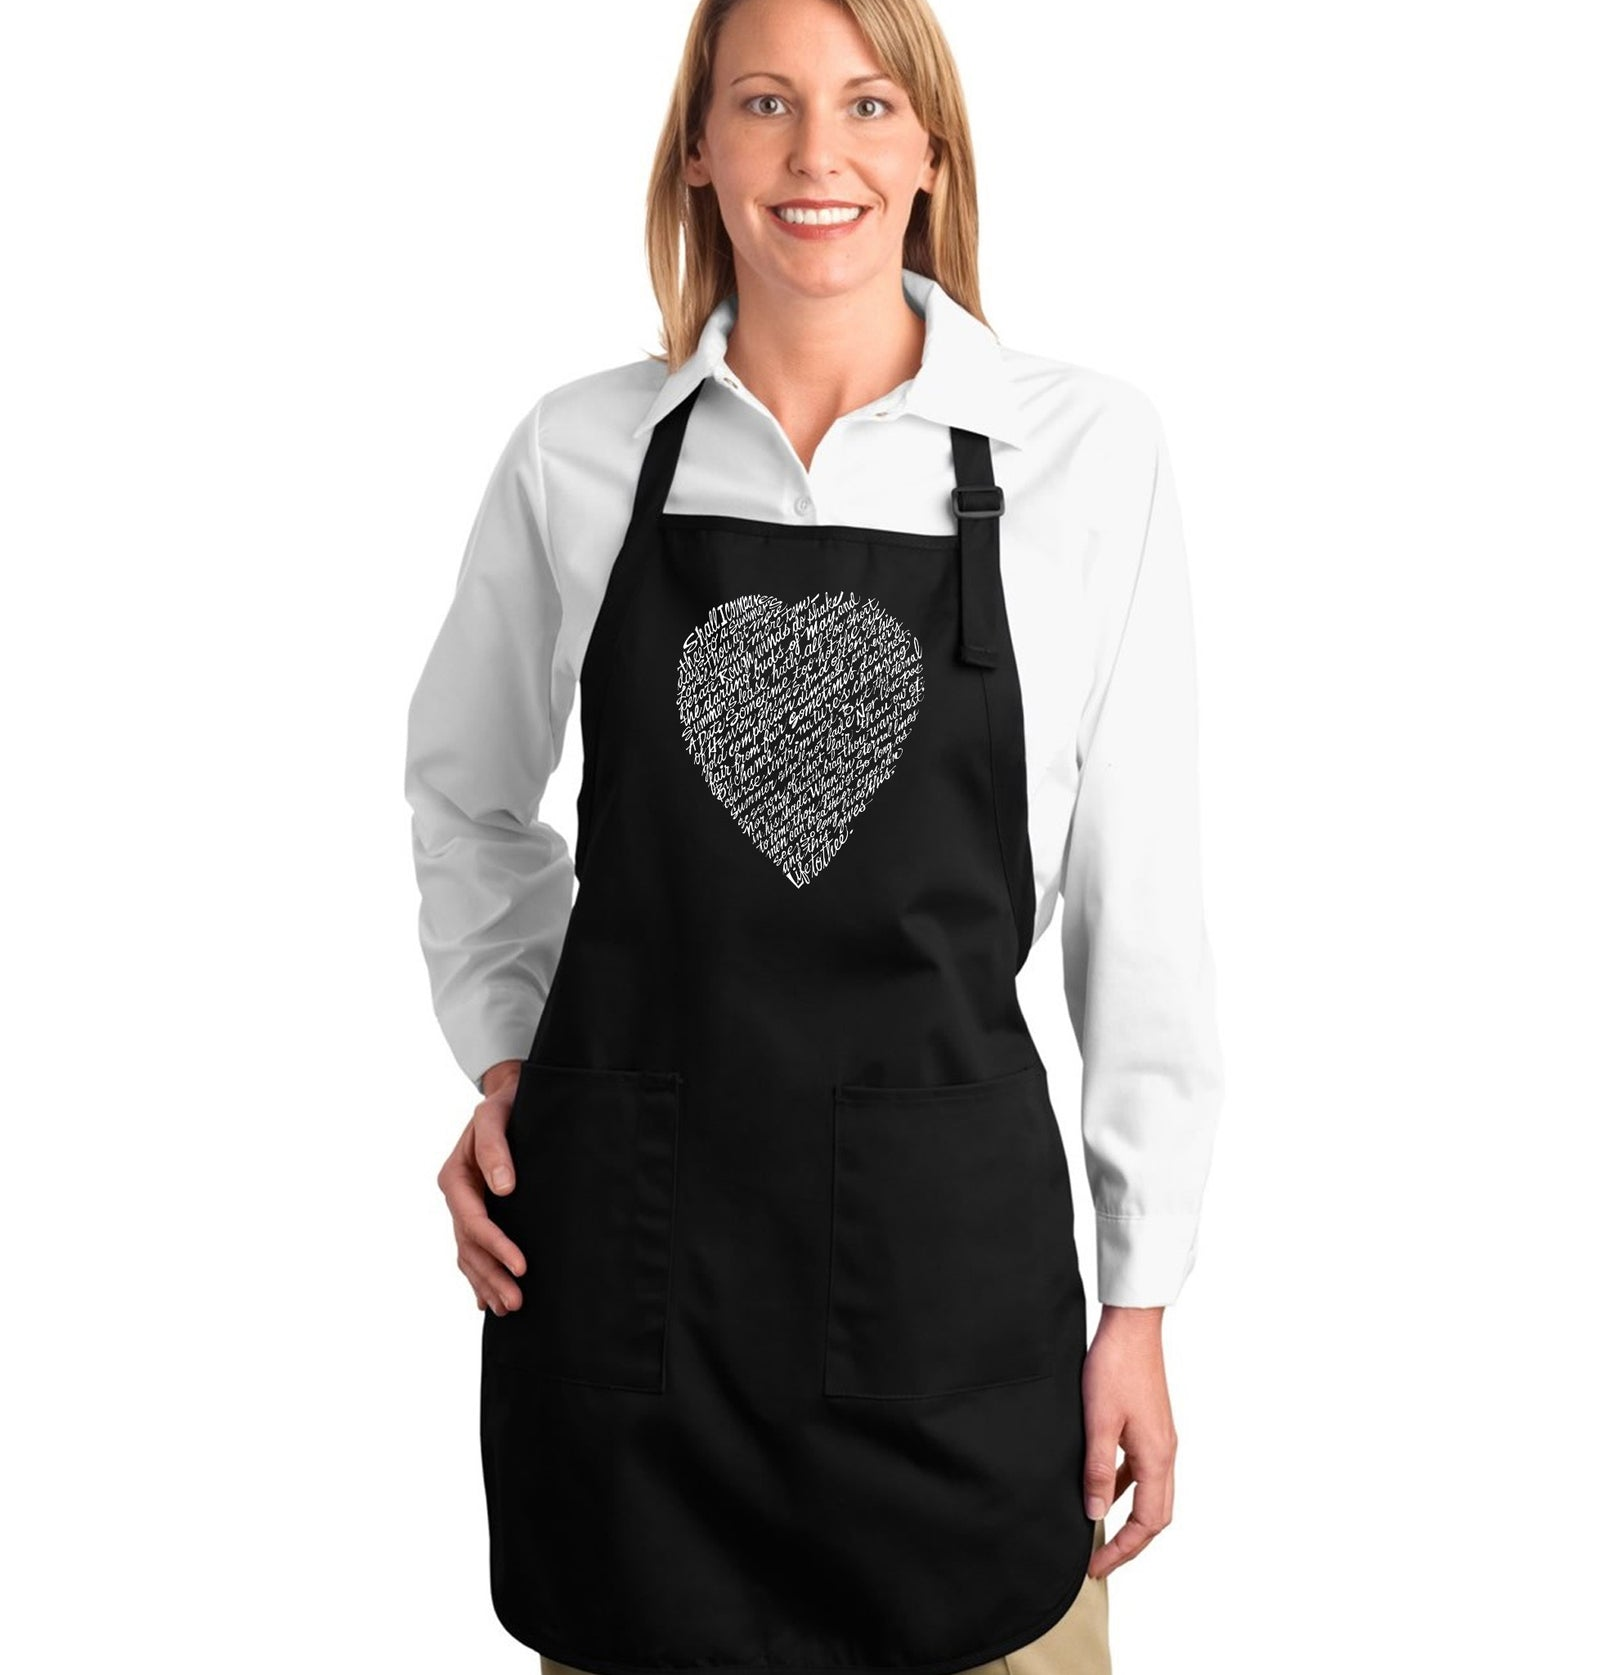 Full Length Apron - WILLIAM SHAKESPEARE'S SONNET 18